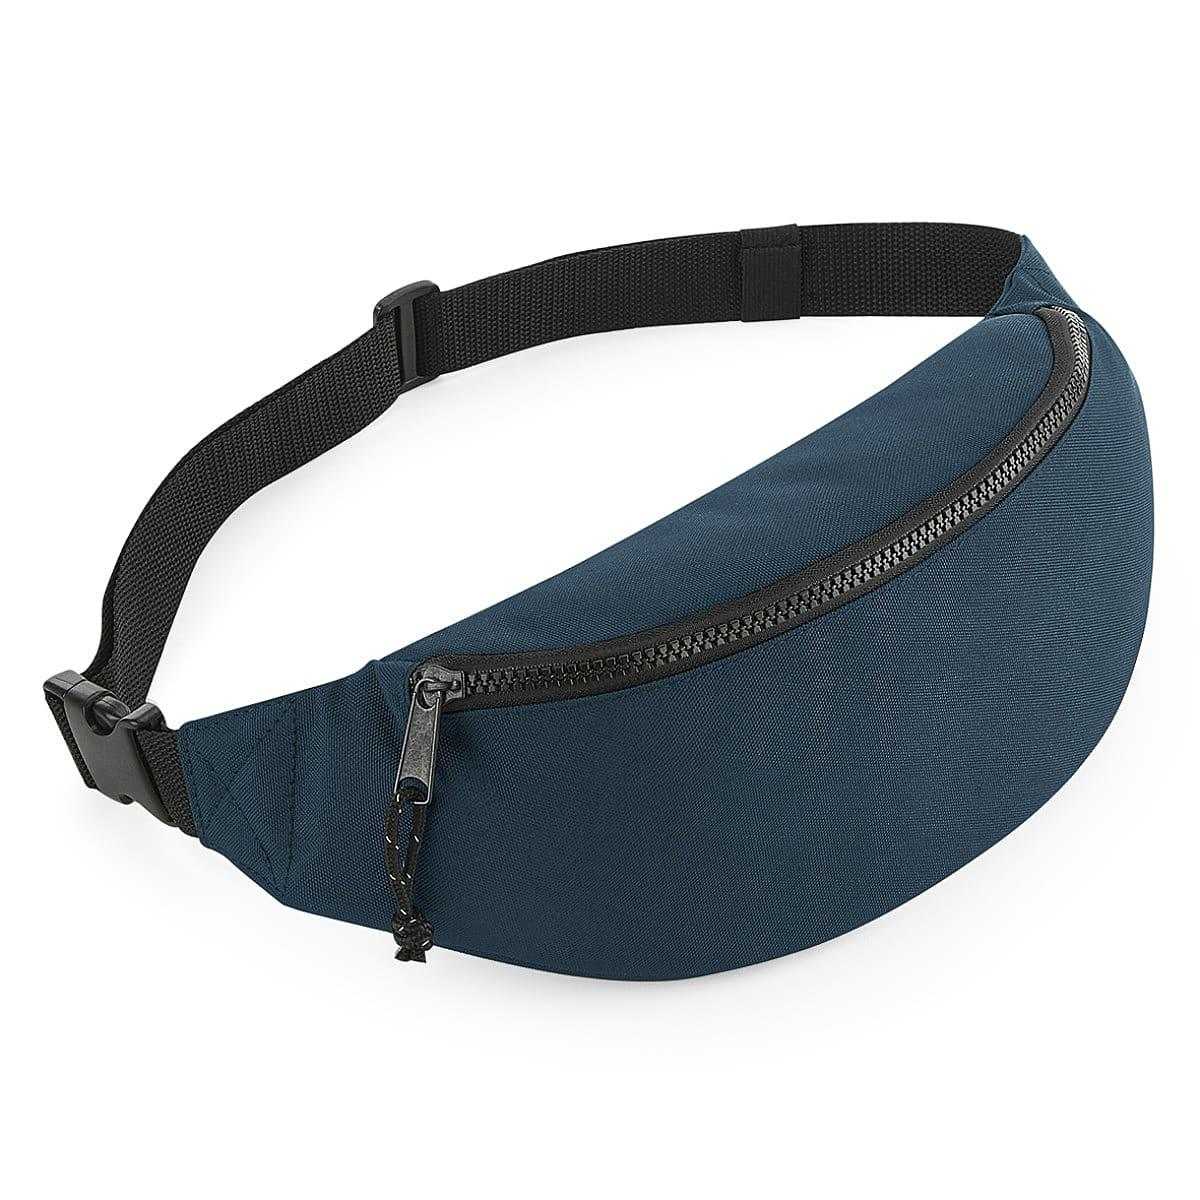 Bagbase Recycled Waistpack in Petrol (Product Code: BG282)